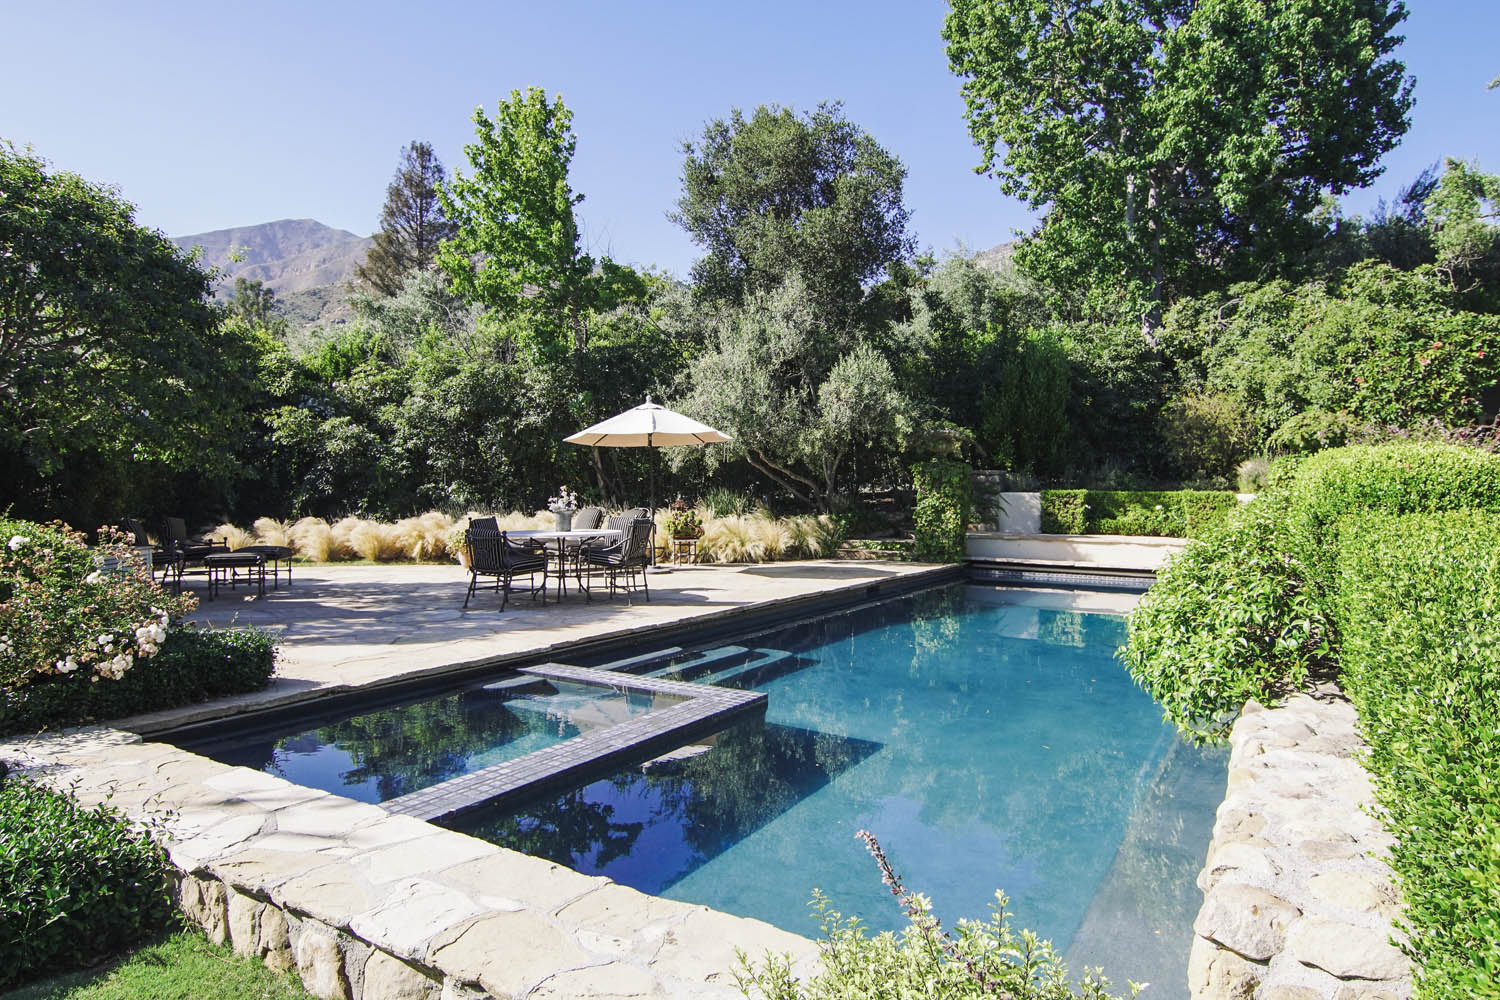 Property for Sale: 808 San Ysidro Lane, Montecito, CA 93108 List Price: $6,250,000 6 Beds 5.5 Baths 6,877 Sq Ft Natural Beauty!